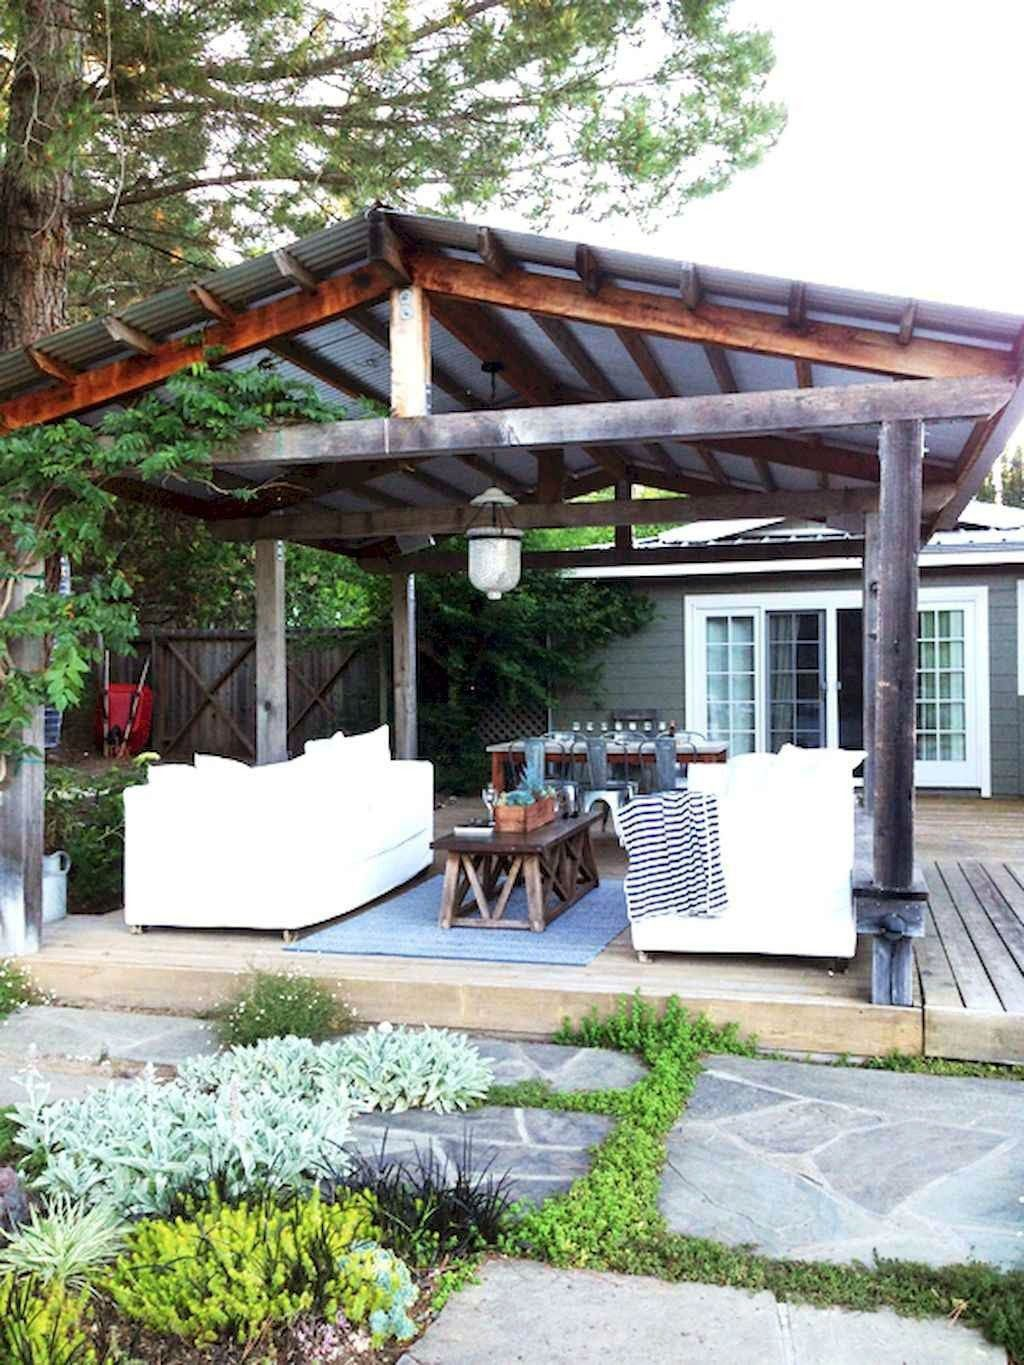 Best Pergola and Pavilion Design Ideas for Your Backyard